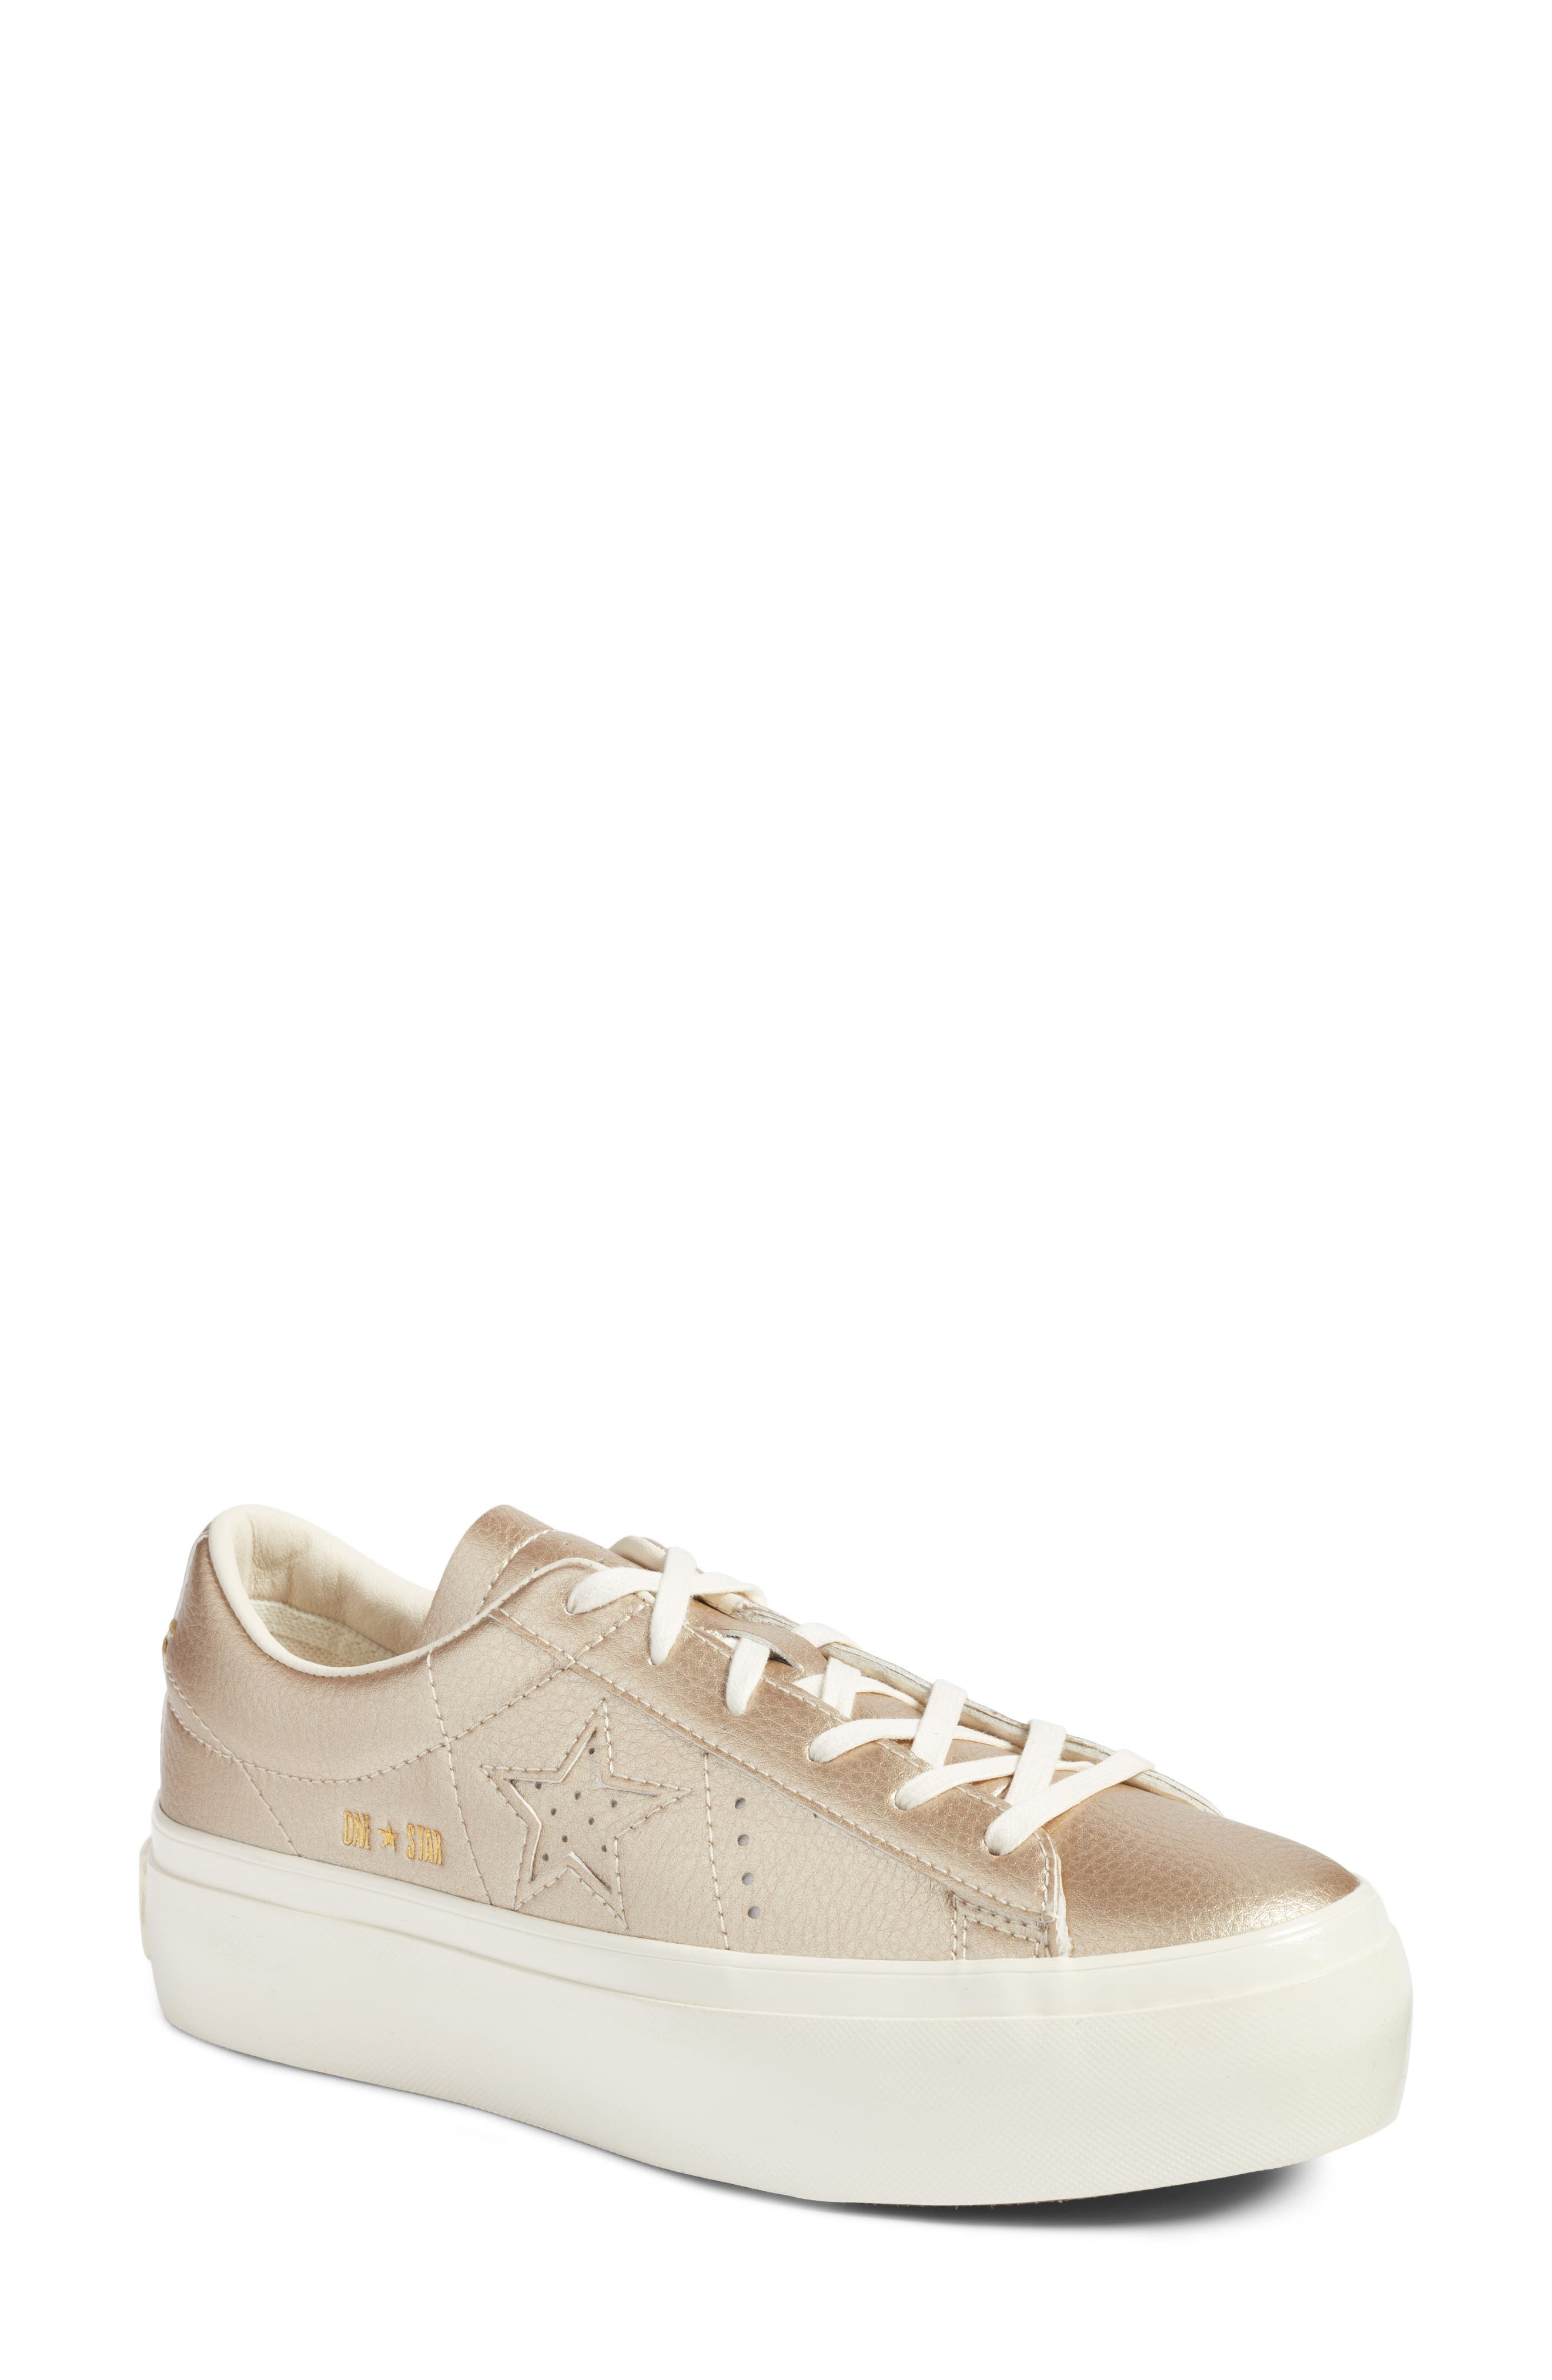 Chuck Taylor<sup>®</sup> All Star<sup>®</sup> One Star Metallic Platform Sneaker,                         Main,                         color,